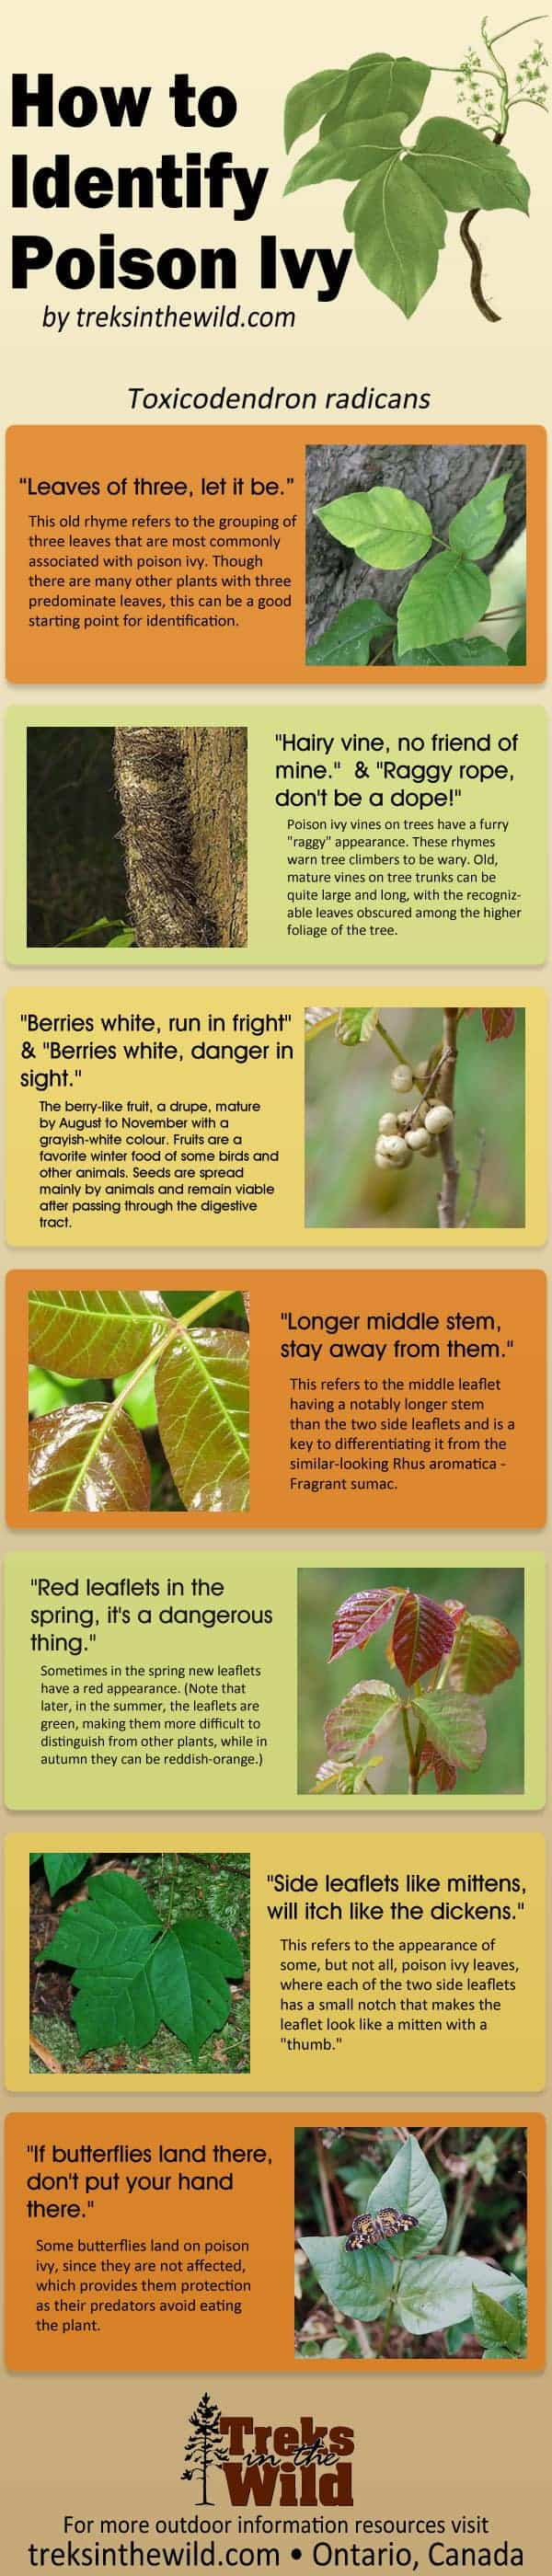 How to Identify Poison Ivy Infographic